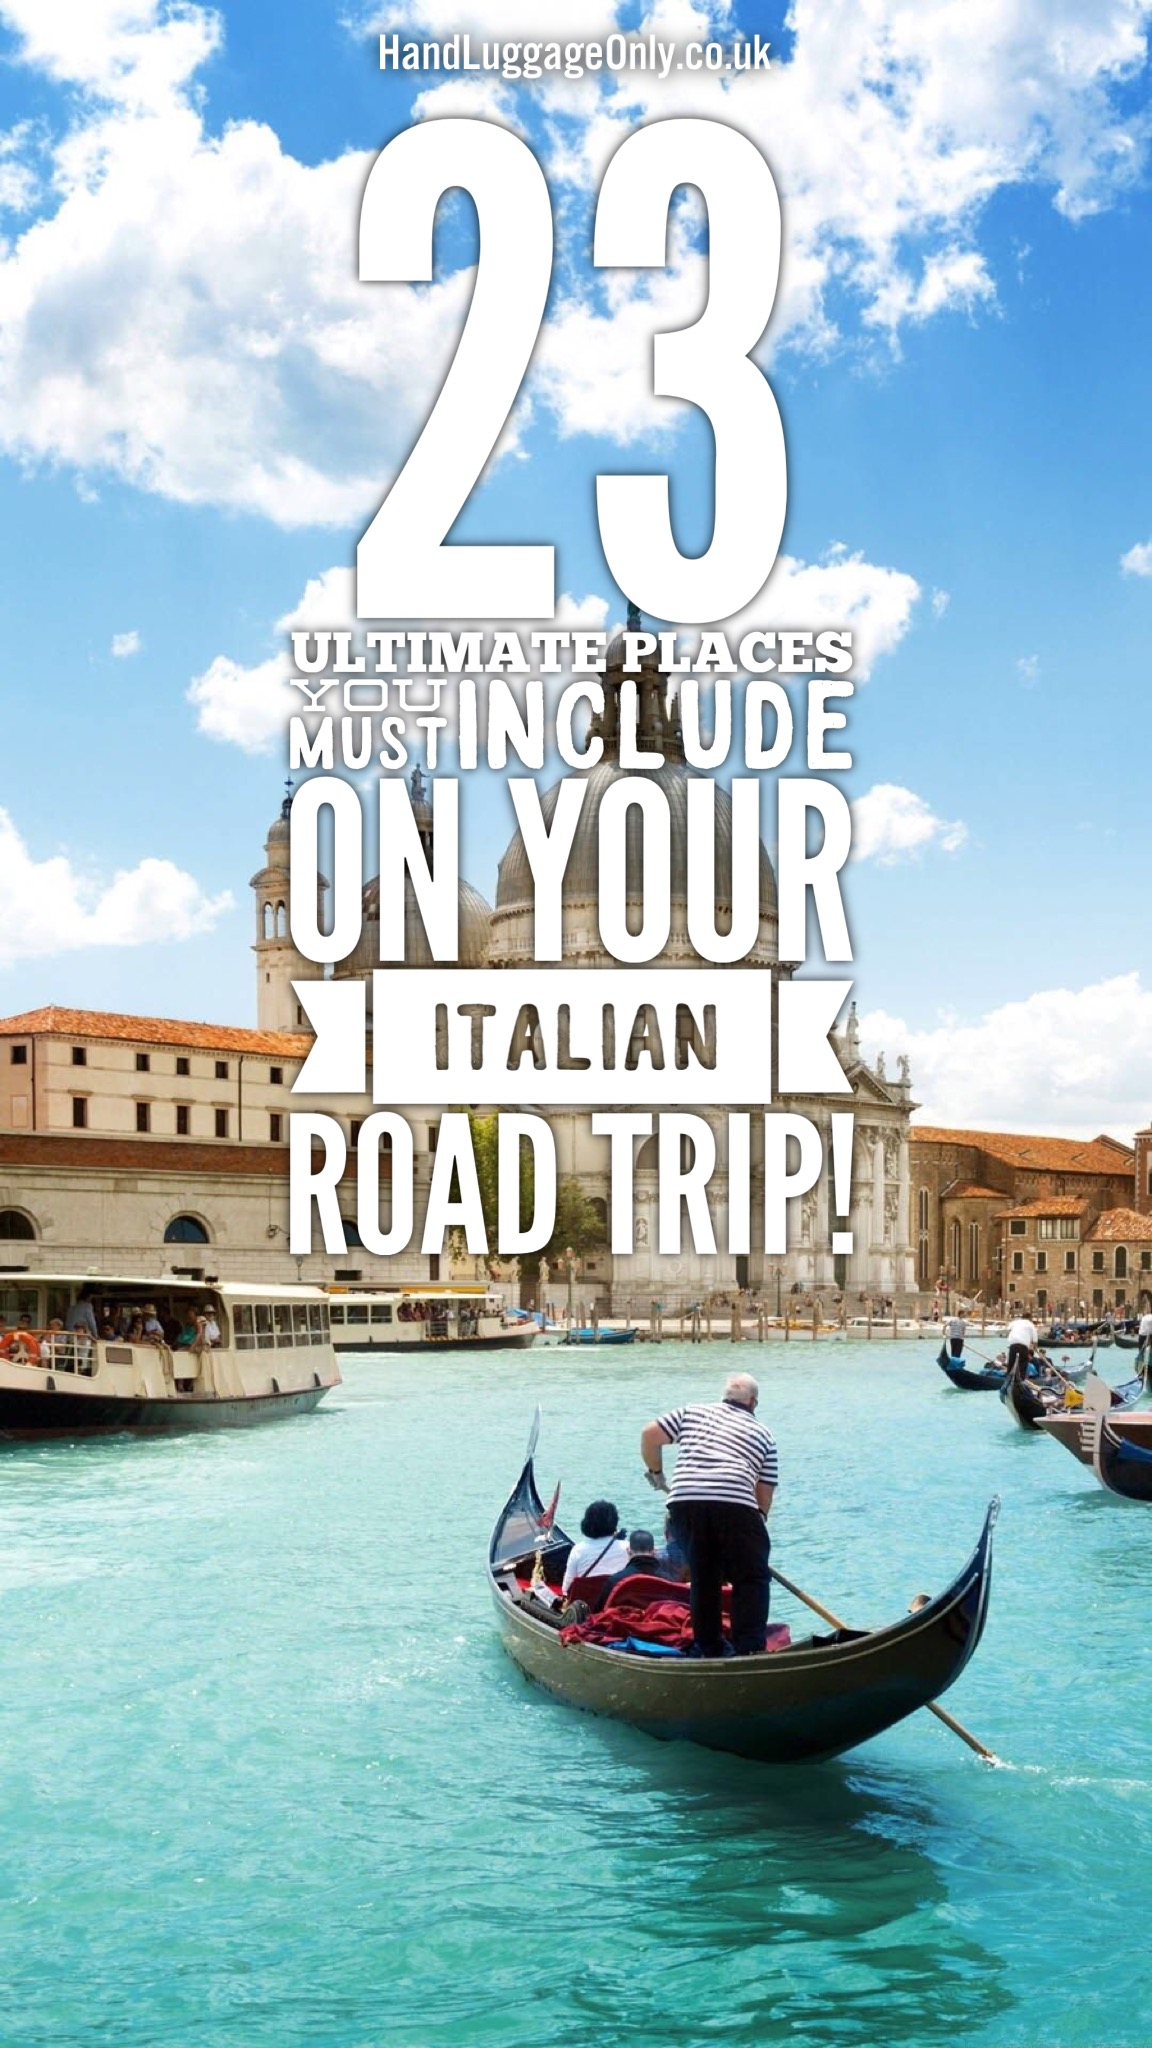 23 Ultimate Places You Must Include On Your Italian Road Trip (1)